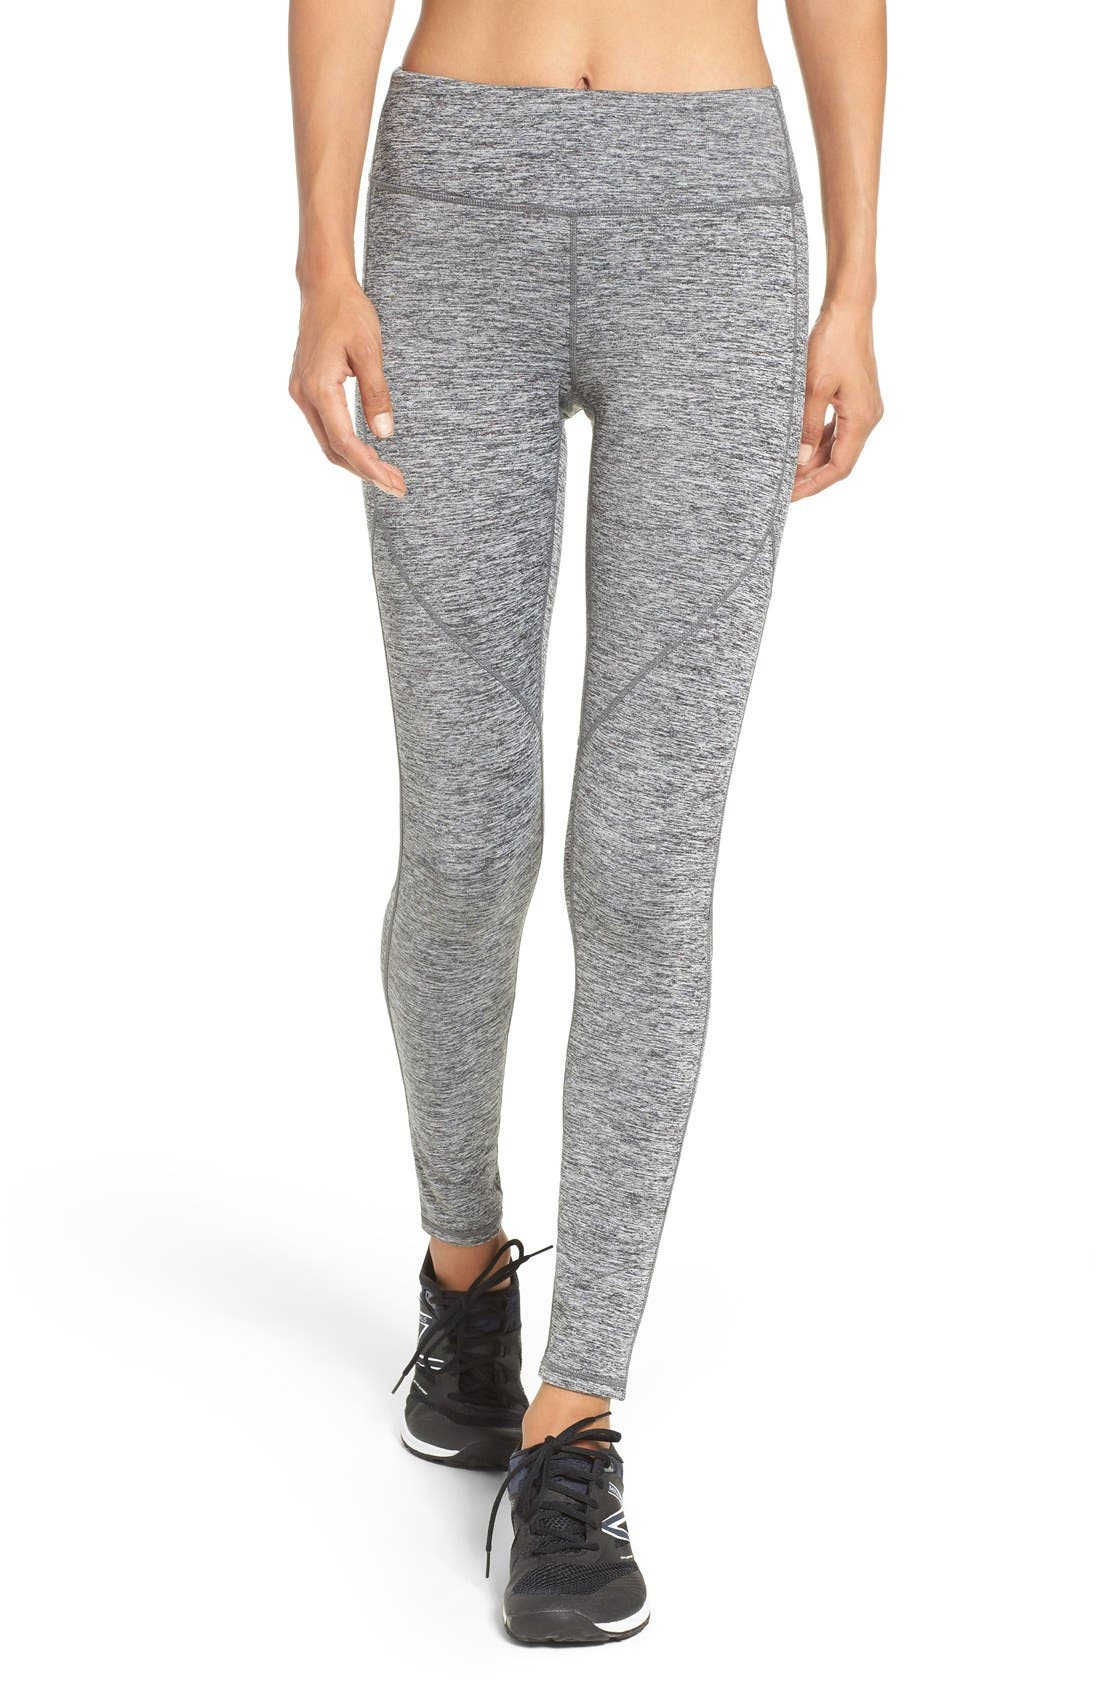 Alternate Image 1 Selected - Zella Heat It Up Reflective Running Leggings